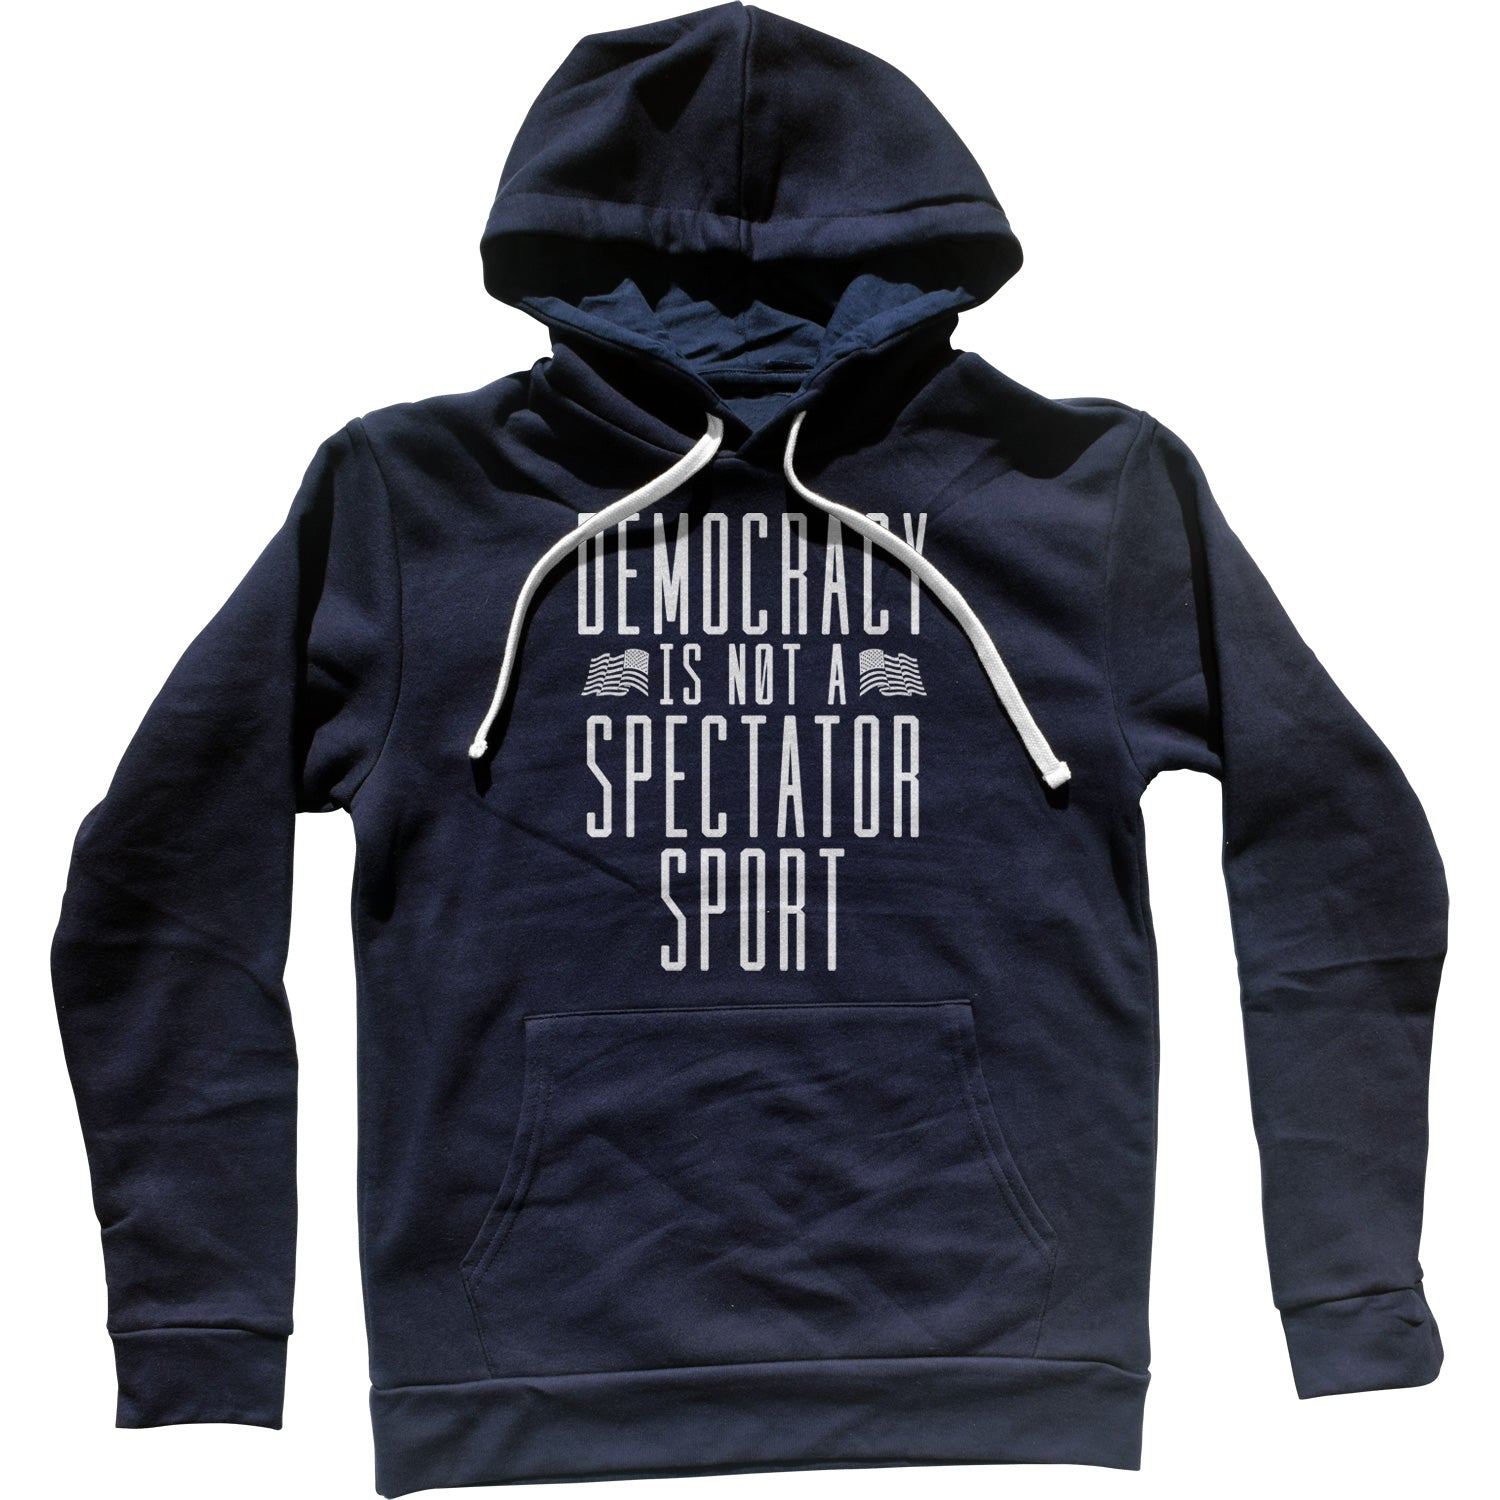 Democracy Is Not a Spectator Sport Unisex Hoodie